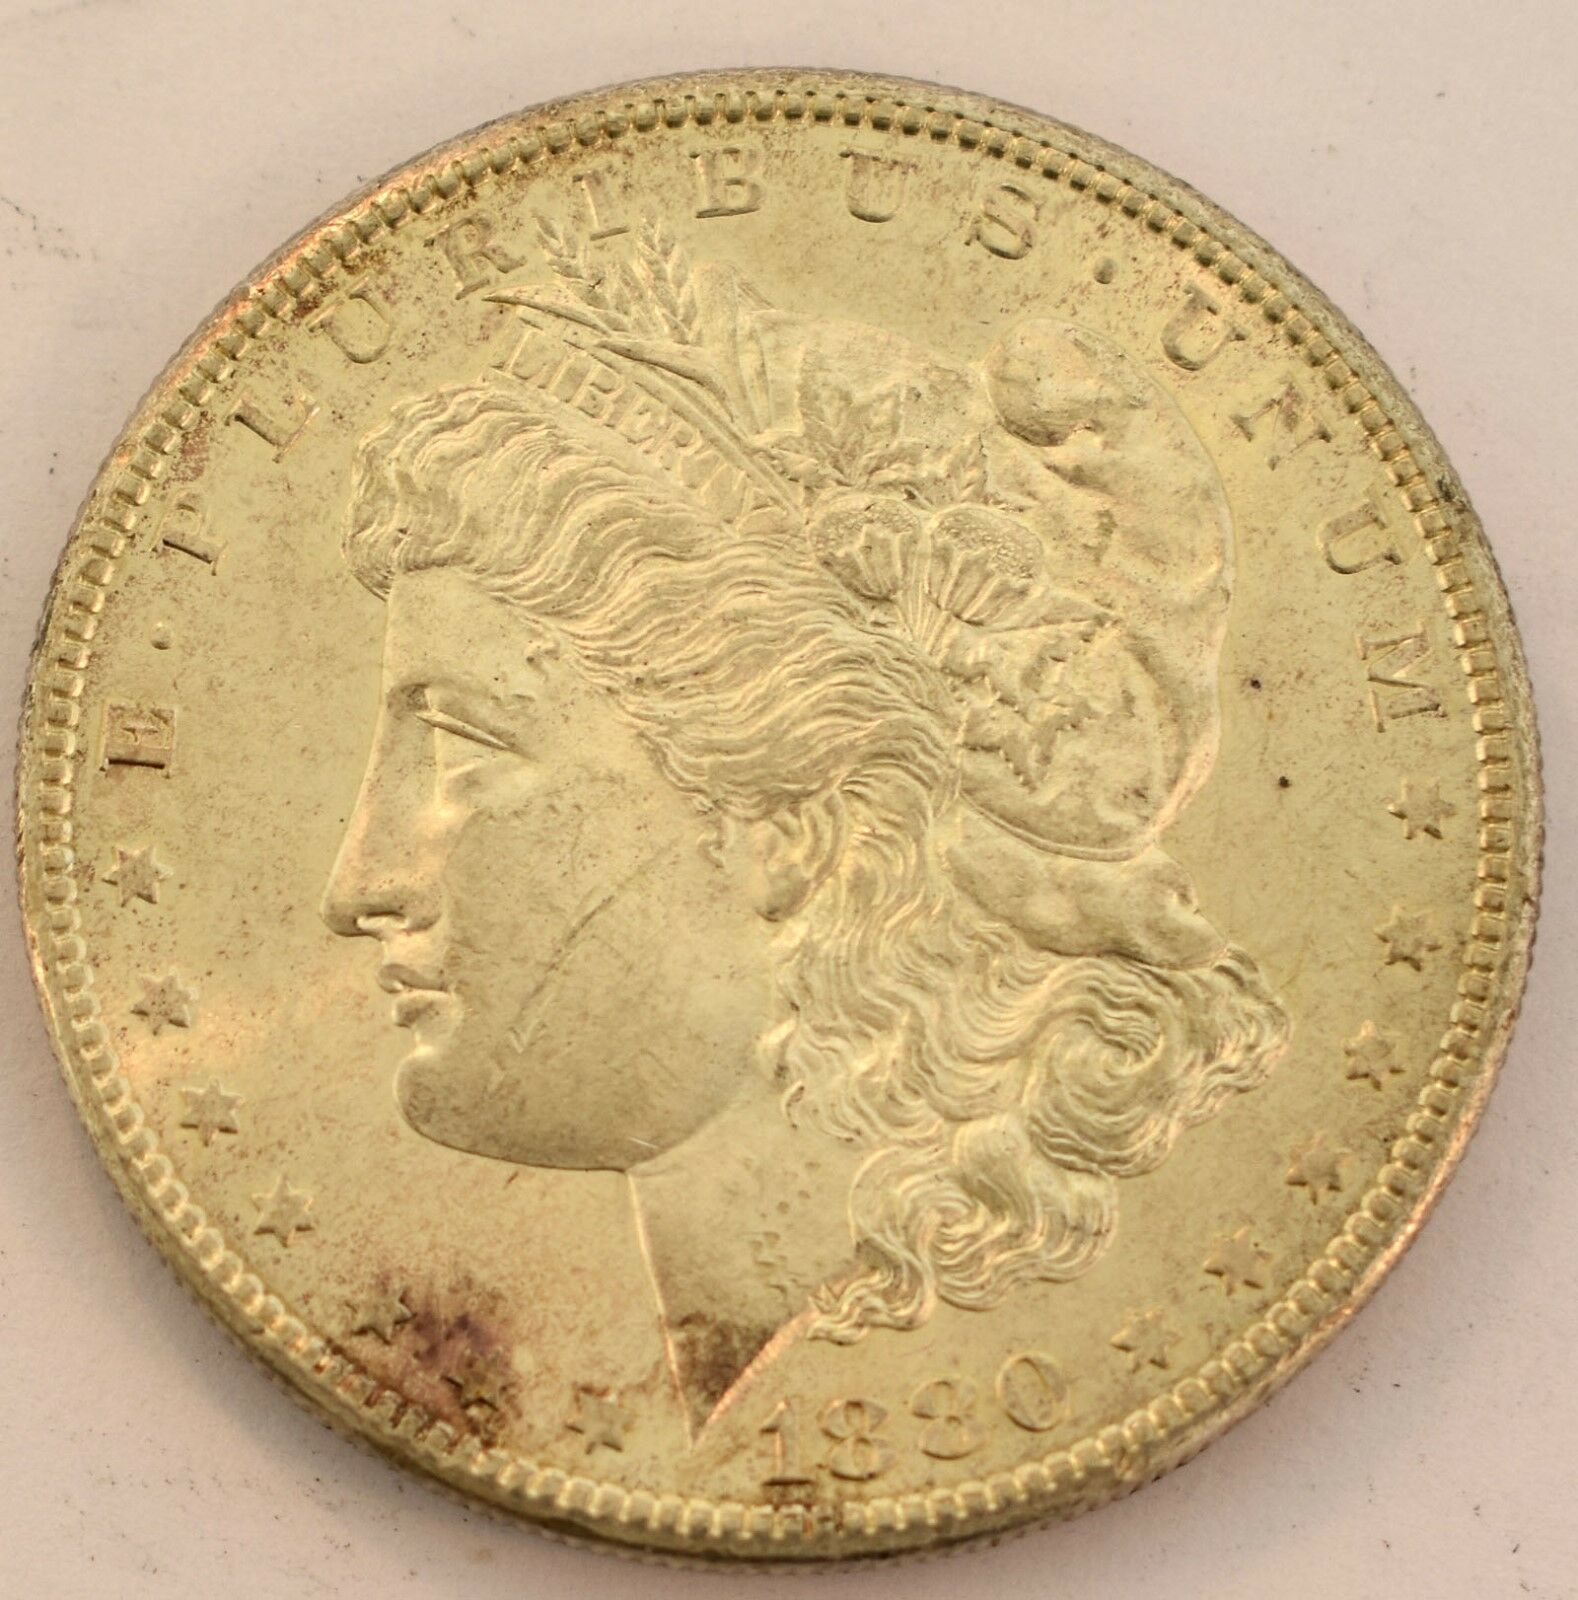 United States 1880 S Morgan Dollar Coin With Dimple Us Coin Ideas Of Us Coin Uscoin In 2020 Coins Dollar Coin Morgan Dollars